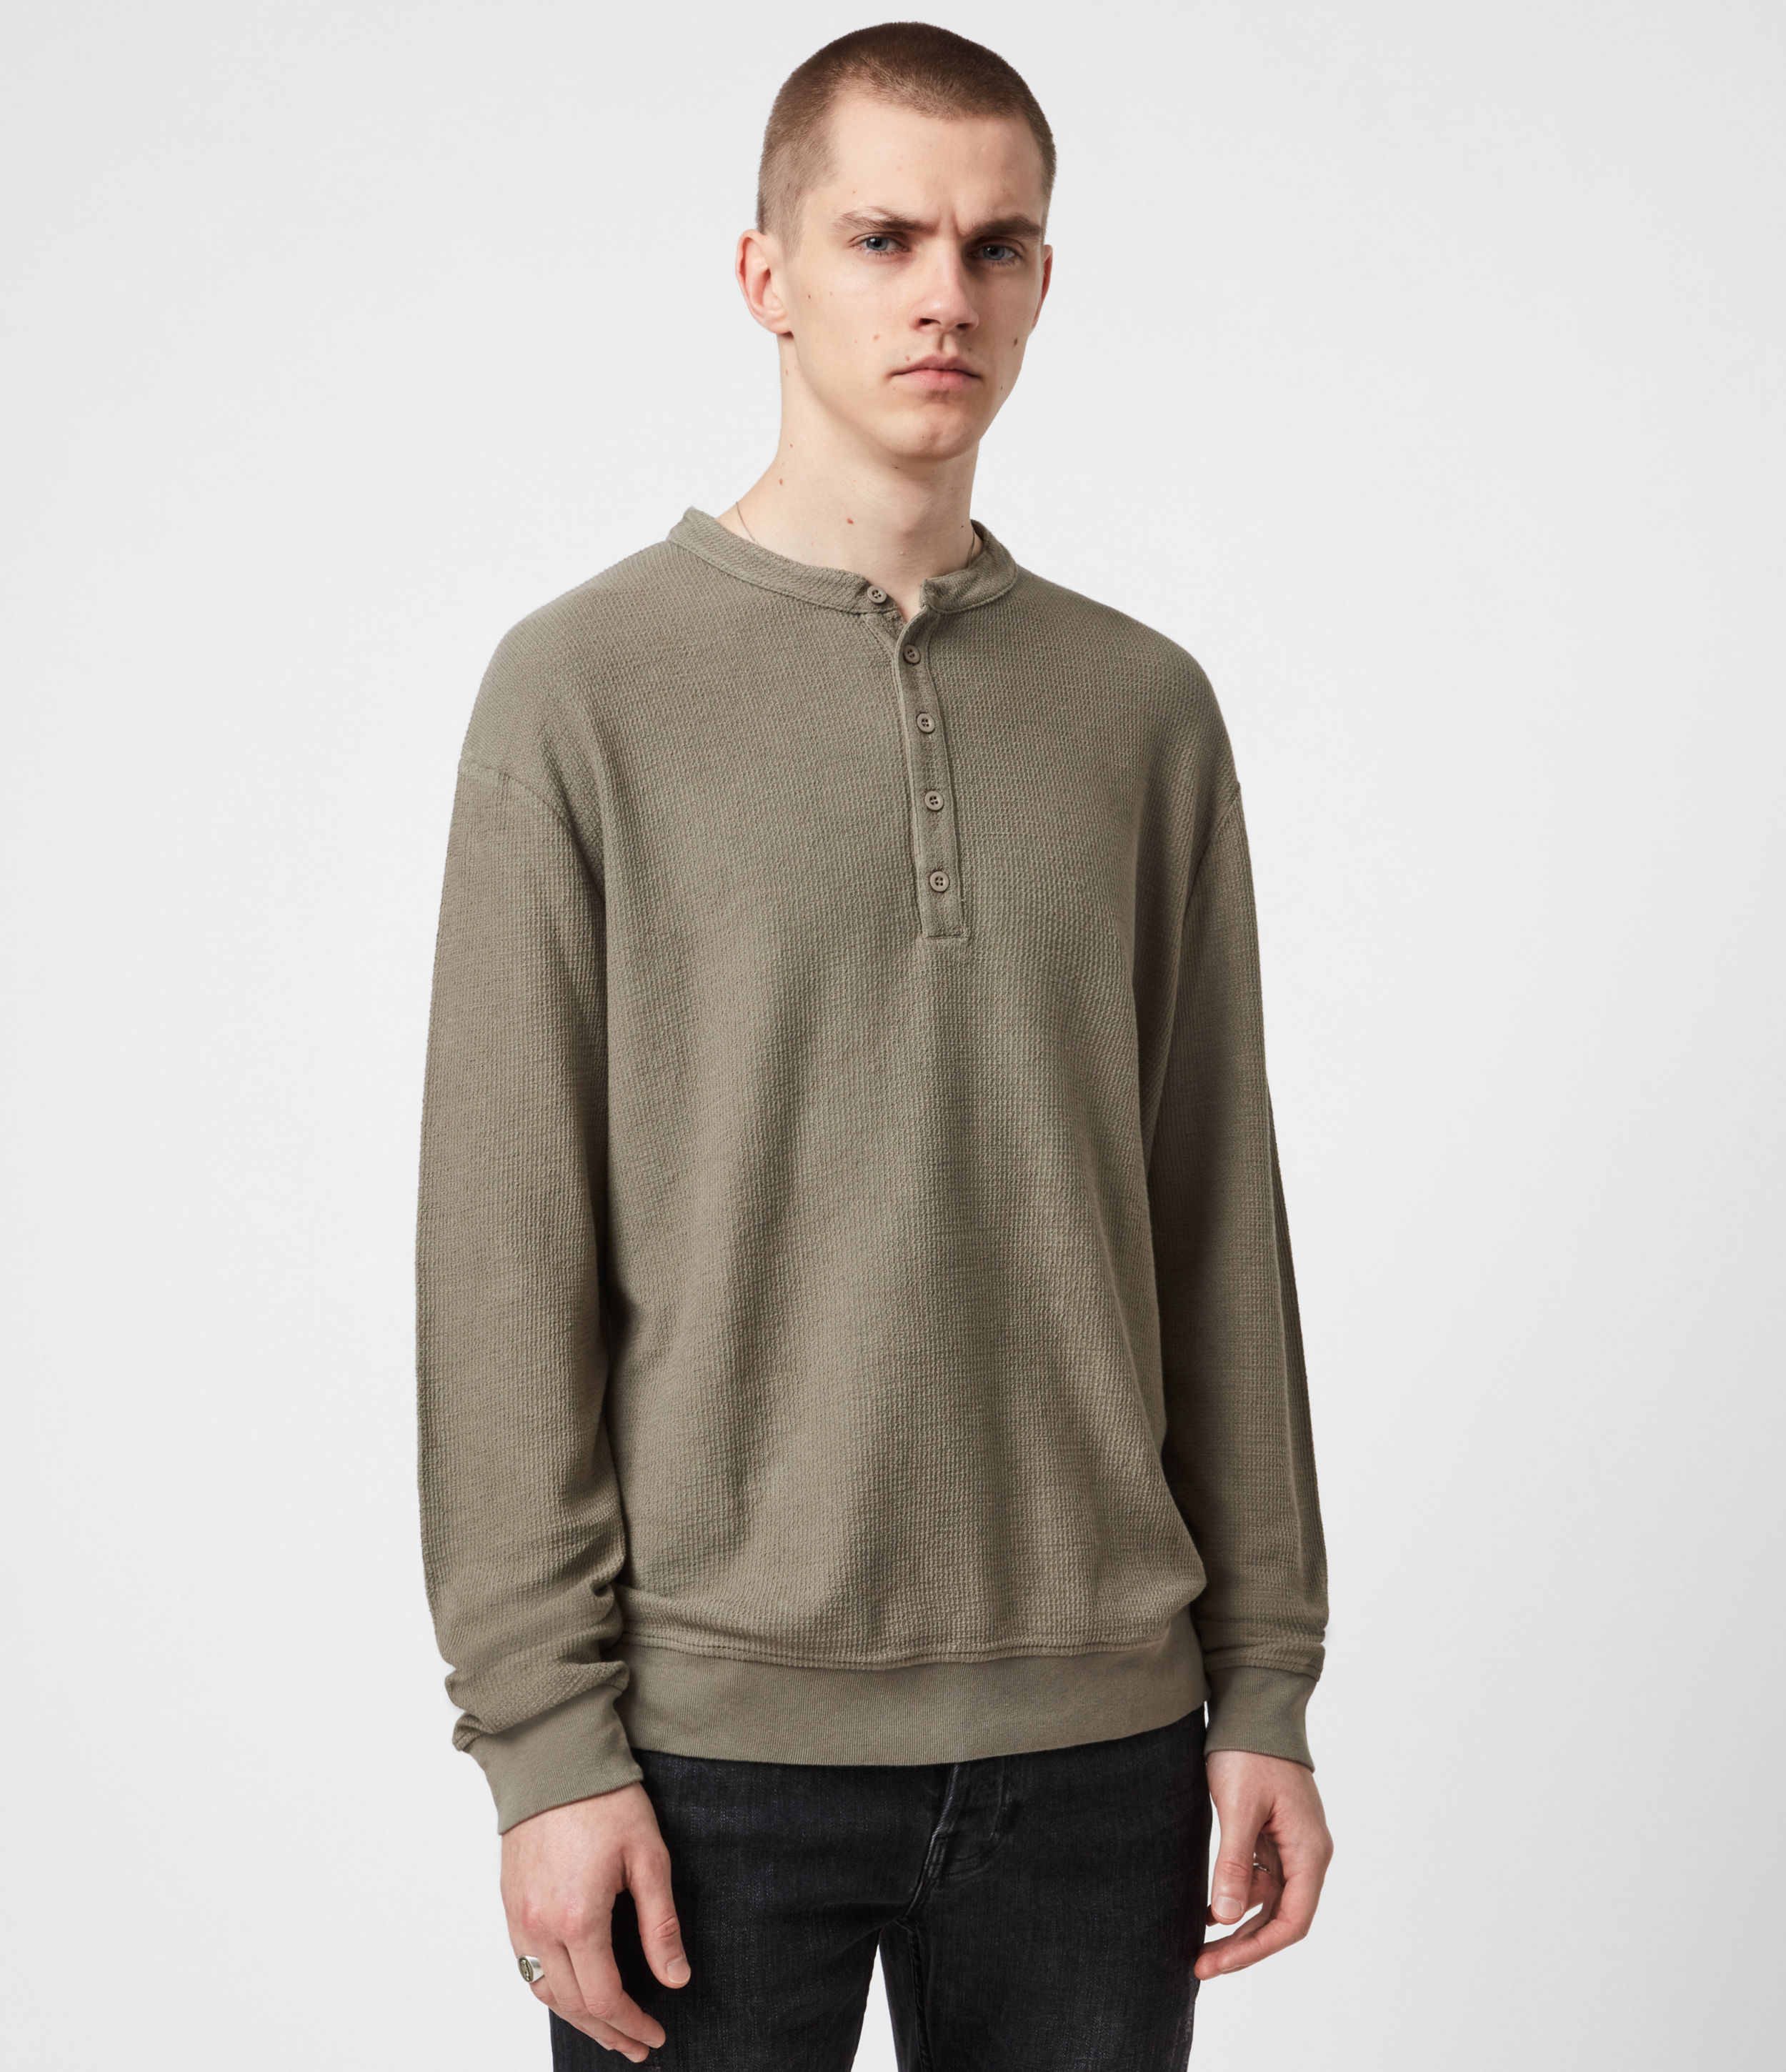 AllSaints Mens Wrenley Organic Cotton Henley, Willow Taupe, Size: S